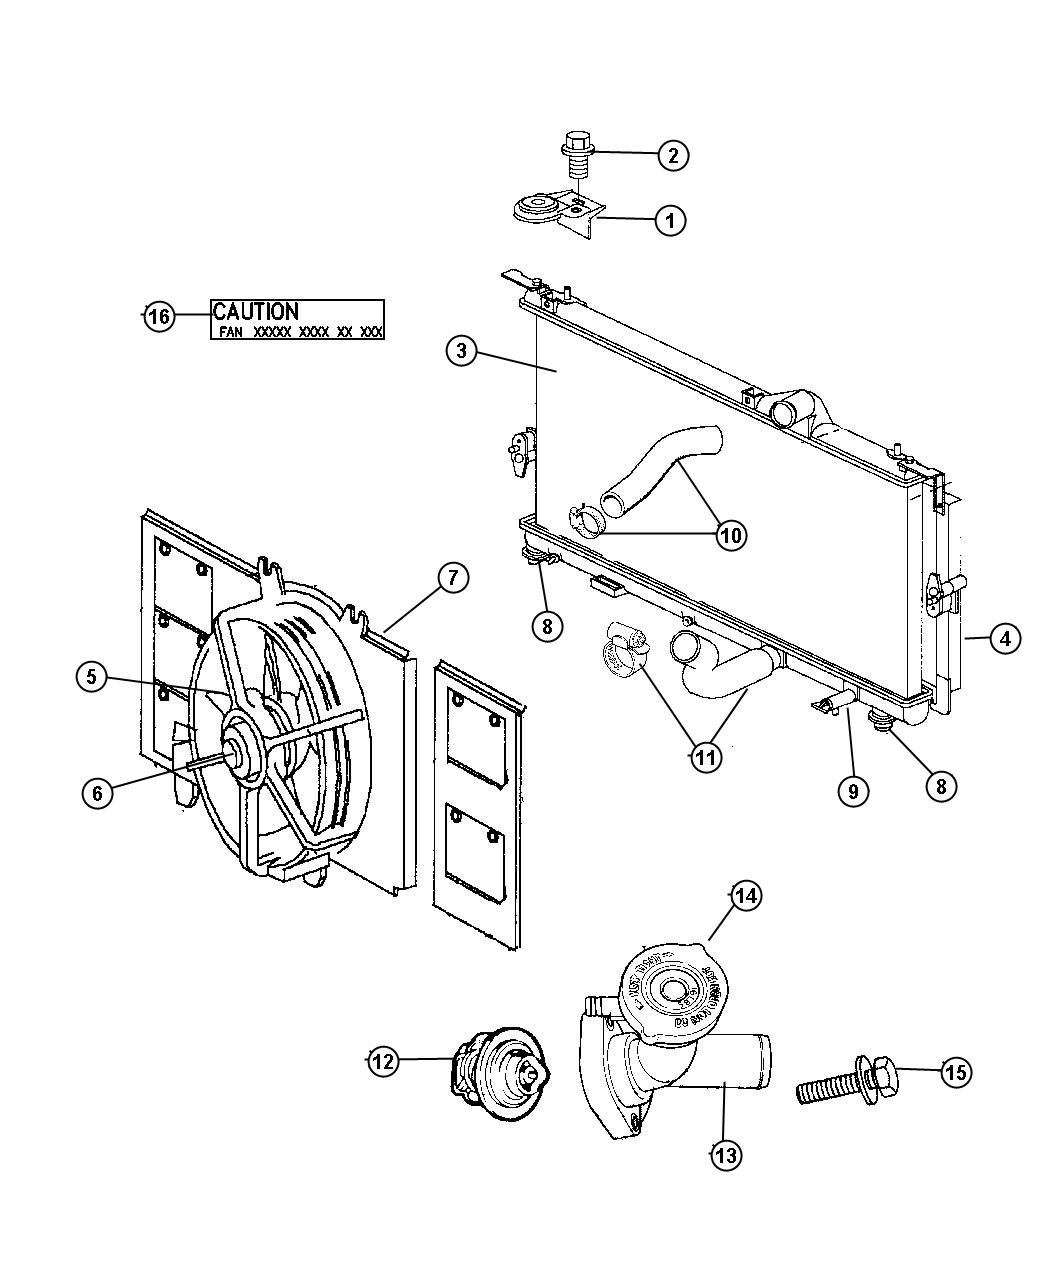 2005 Dodge Neon Wiring Diagram Likewise 2002 Dodge Neon Wiring Diagram